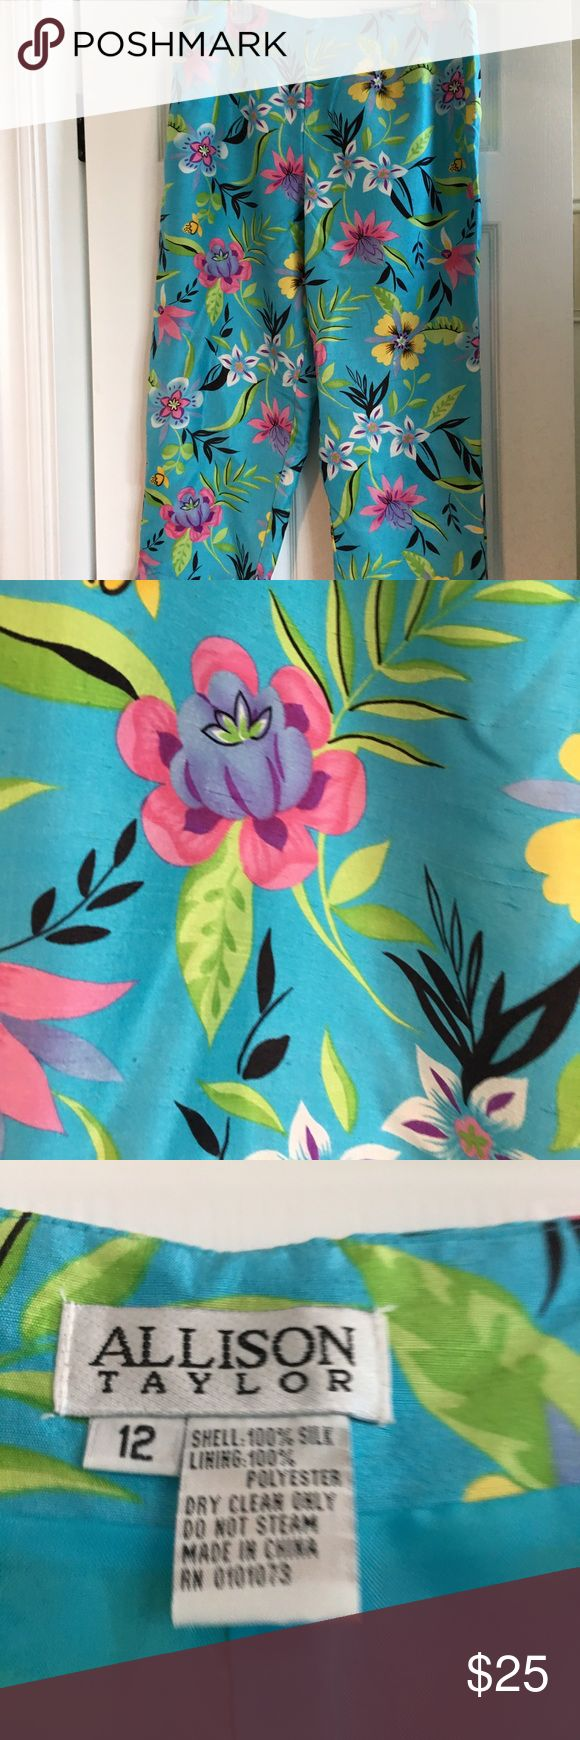 """Allison Taylor ankle Pant: SILK tropical turq 12 Allison Taylor ankle pant of 100% silk turquoise tropical print. LINED. In-seam to hem 24-1/2"""". Rose, yellow, & purple flowers w/slender black leaves. 1-1/2"""" slit outside ankle. Side zip & 2 darts front & back. Non-smoking home. SIZE 12 (Similar unlined @ Chico's NOW Reg. $89 on sale for $49) Allison Taylor Pants Ankle & Cropped"""